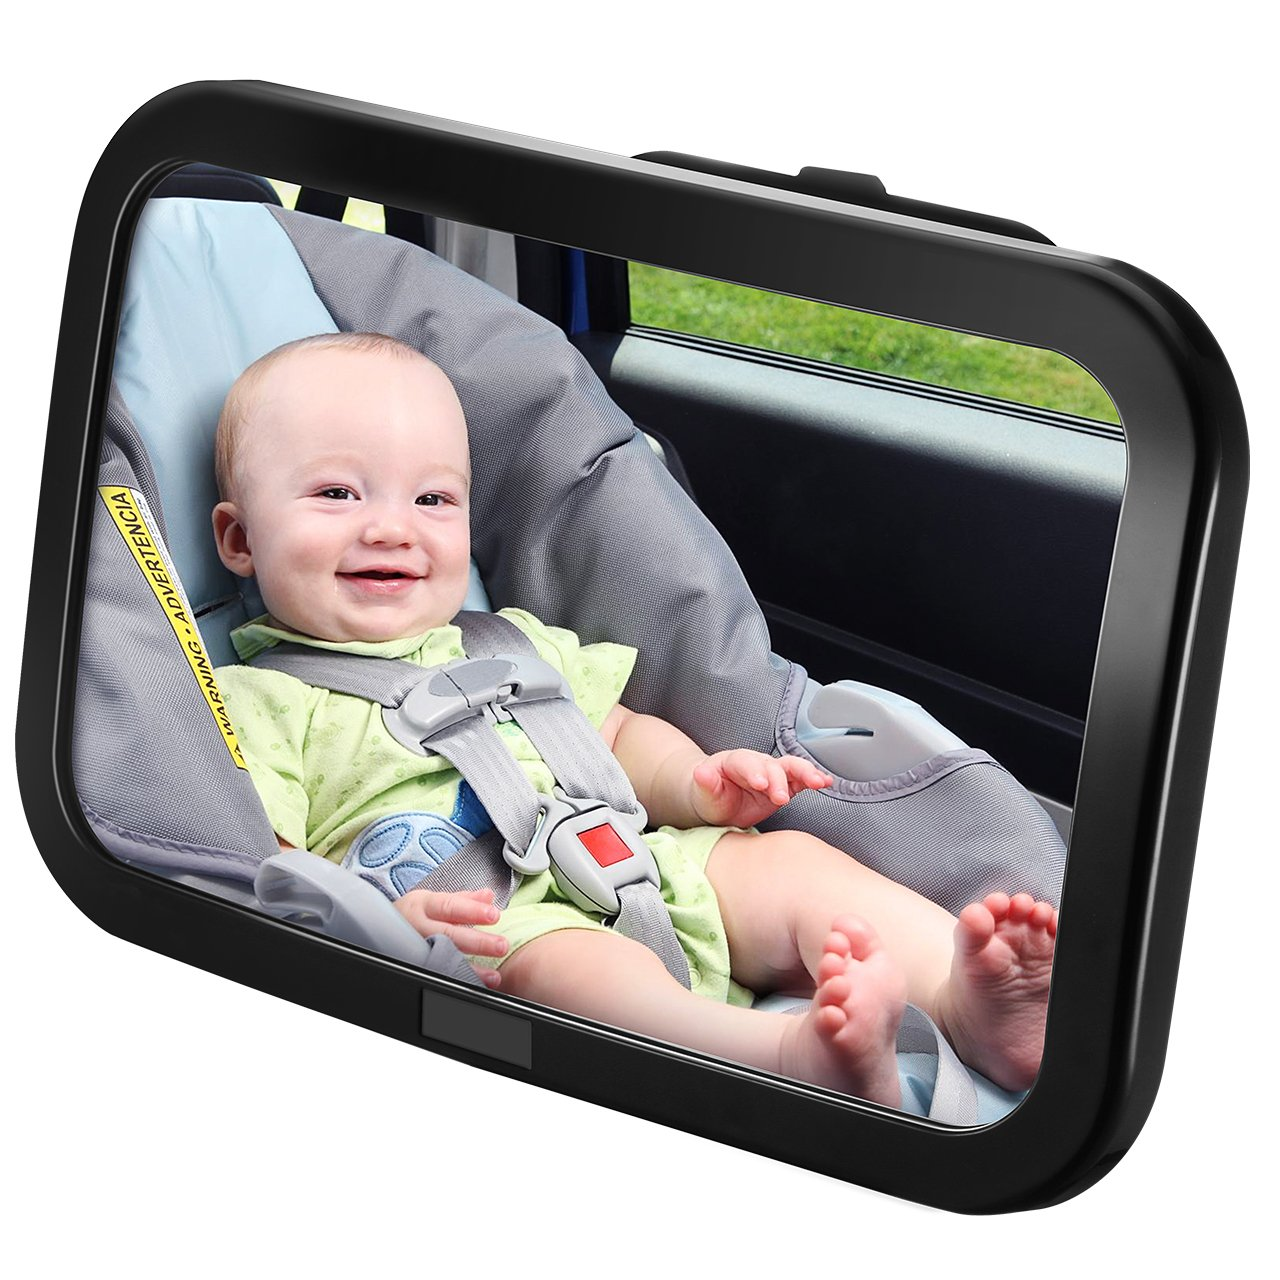 OMORC Baby Car Mirror, Car Mirror for Baby Rear Facing with Wide Convex View, 360 Degree Angle Rotatable Baby Mirror for Car, Shatterproof & Safety Baby Mirror for Back Seat by OMORC